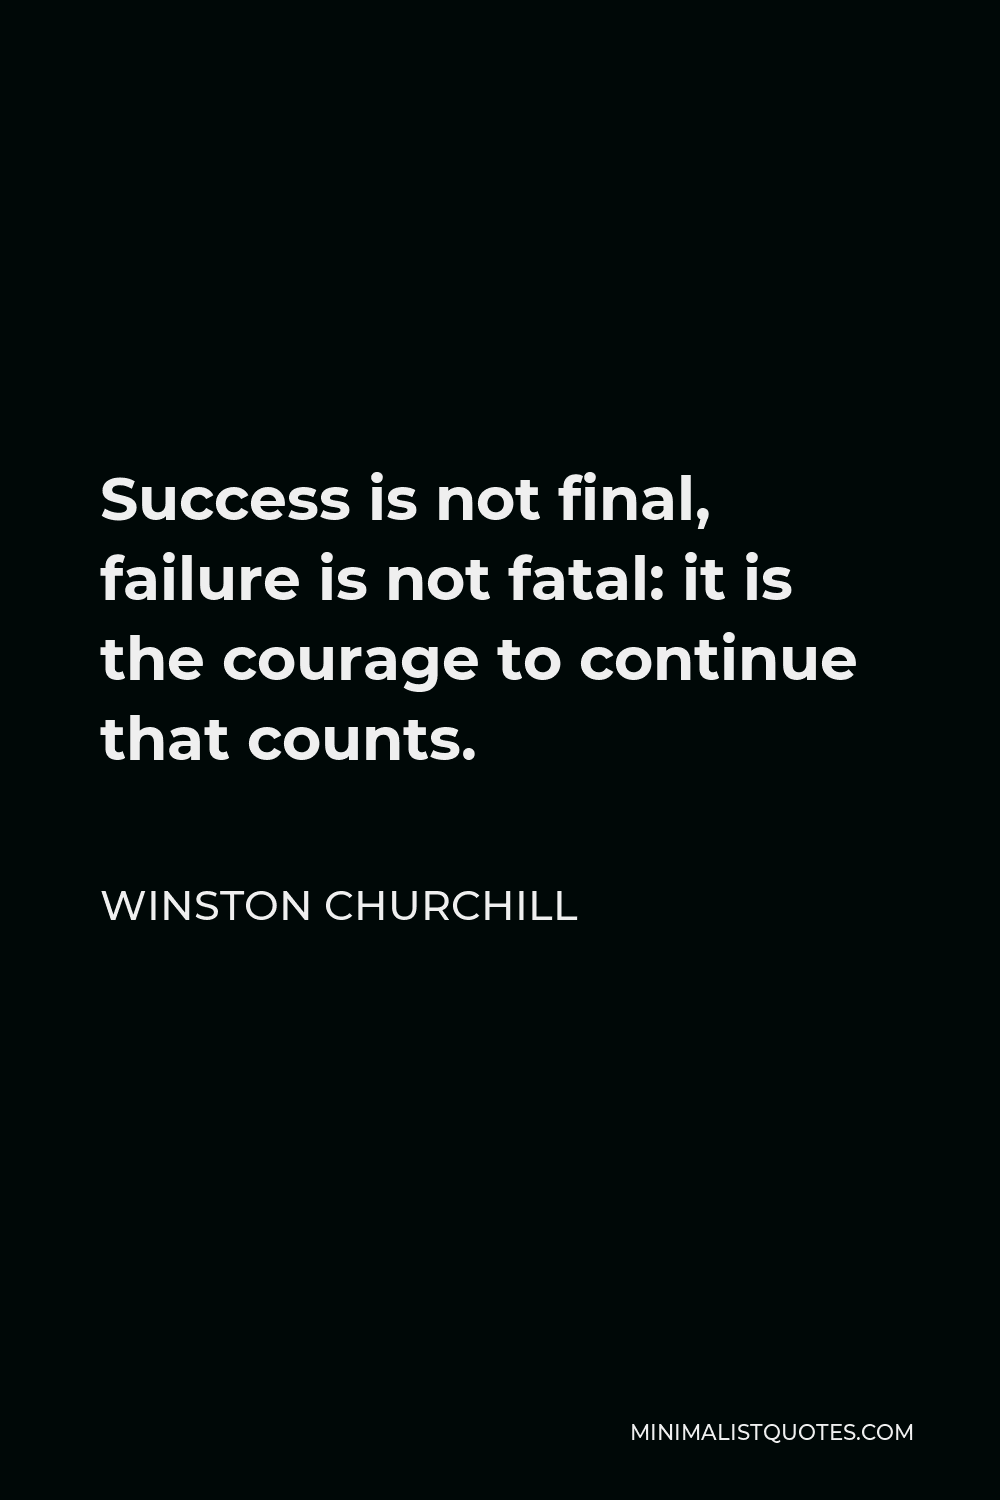 Winston Churchill Quote Success Is Not Final Failure Is Not Fatal It Is The Courage To Continue That Counts